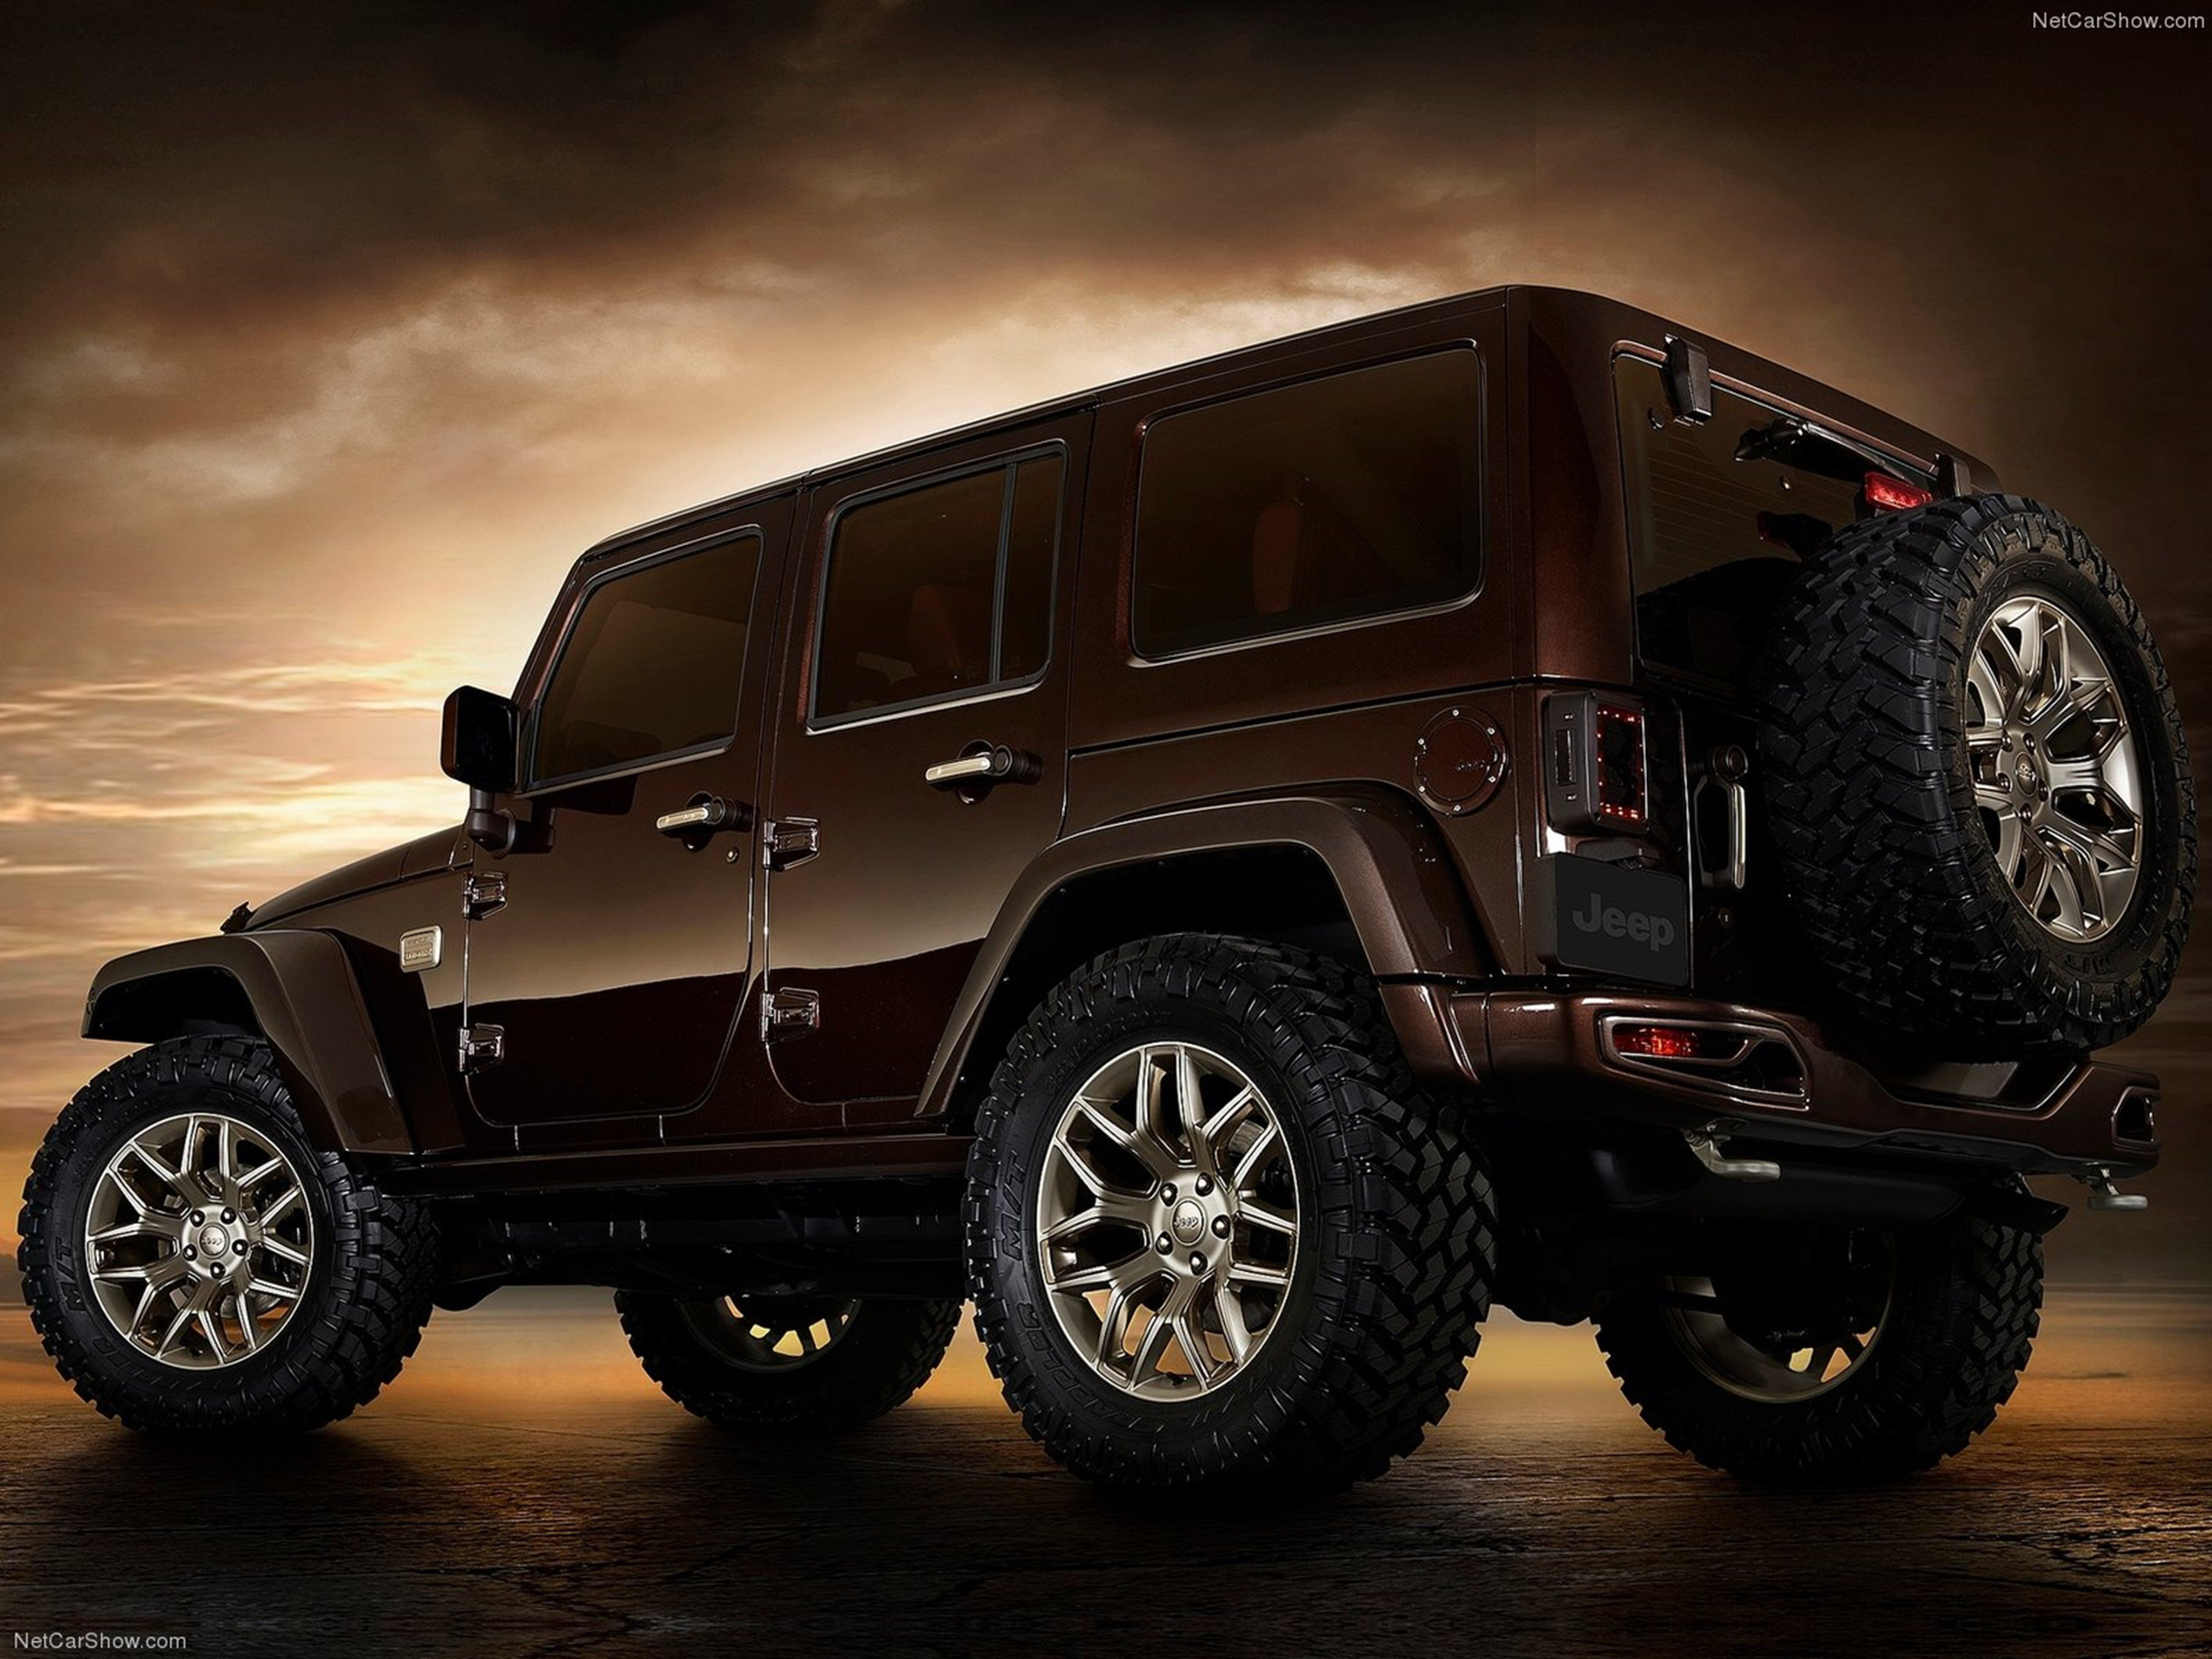 2019 Jeep Wrangler Sundancer Concept photo - 6